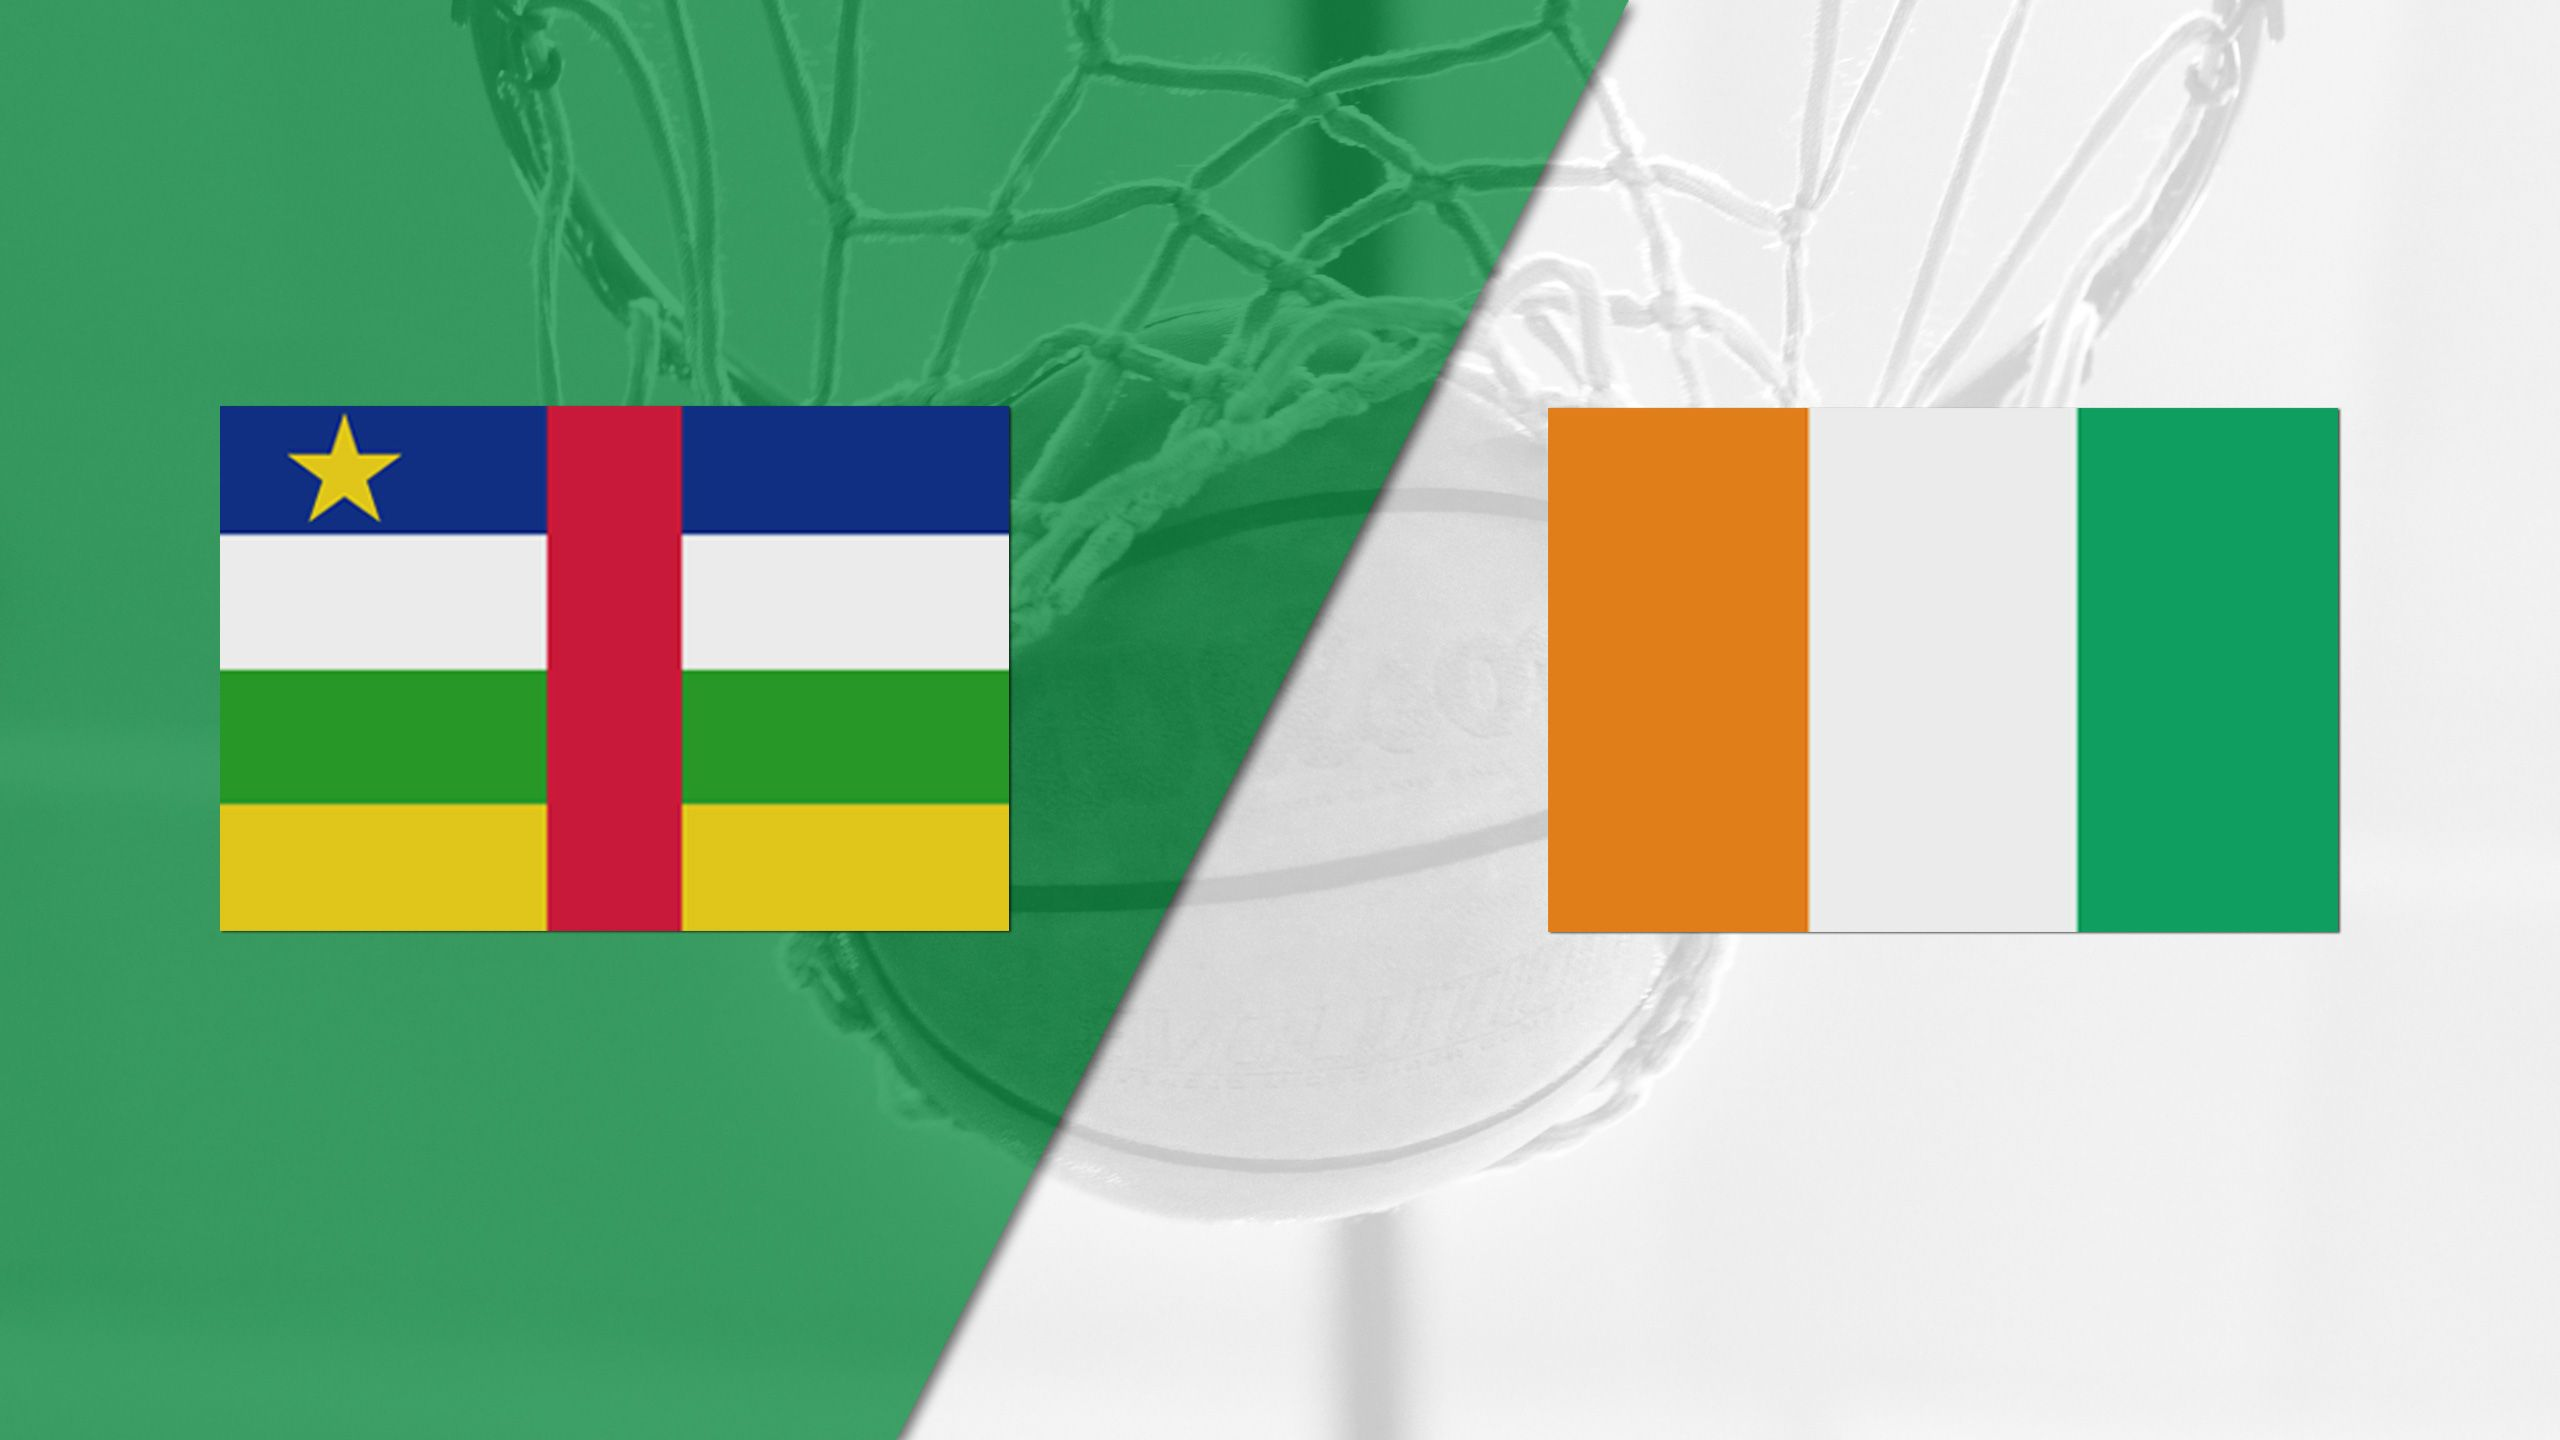 Central African Republic vs. Cote D'Ivoire (FIBA World Cup 2019 Qualifier)